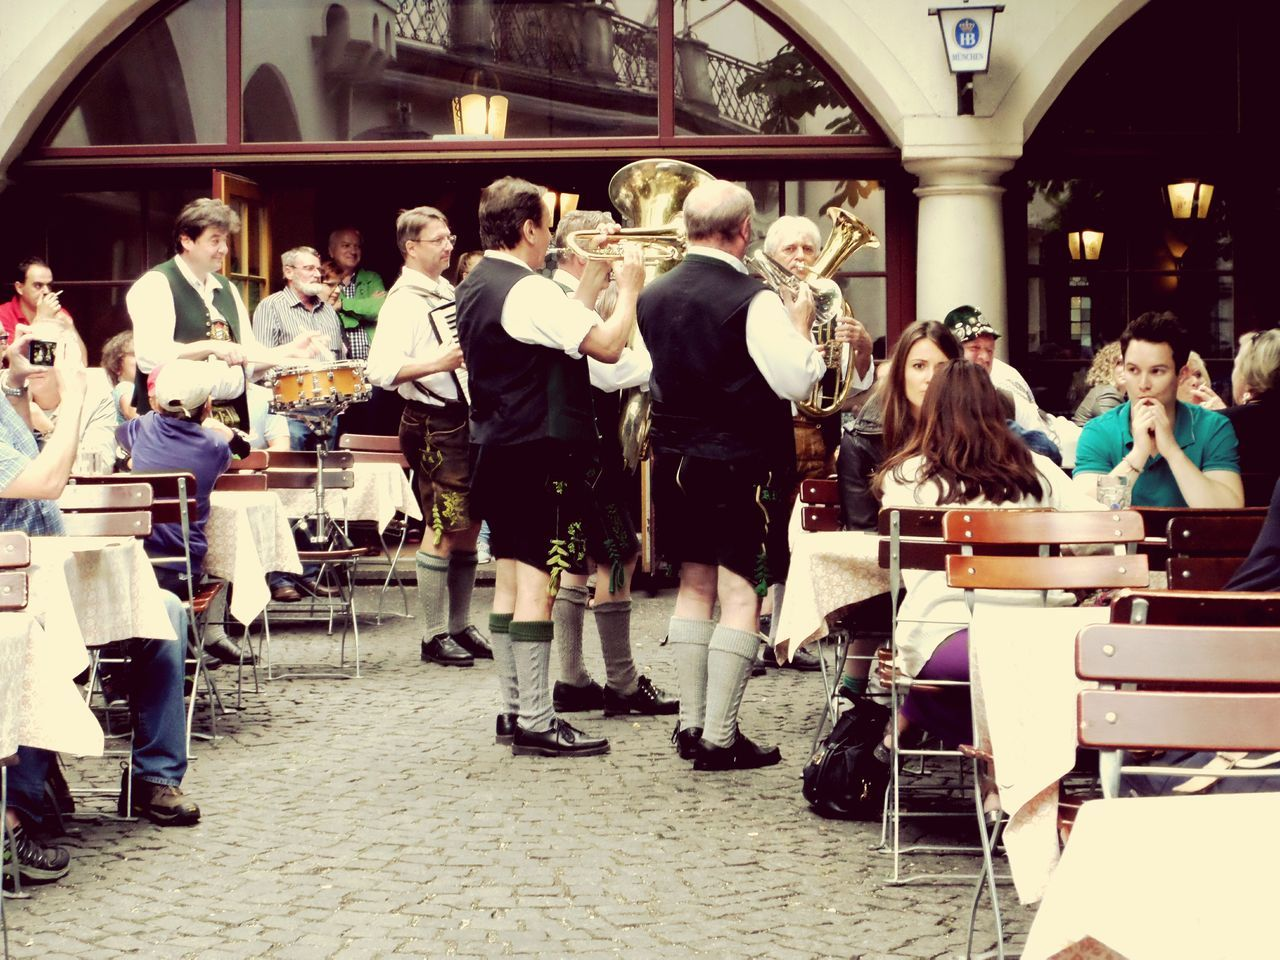 EyeEm Five Senses Hearing Music Hearing The Word Music Musicians Munich Talented Musical Instruments Talent TALENTED PEOPLE Band Talentovintage Vacation Enjoying Life Enjoying A Meal Senses Sense Of Place SensExperiencE NYC Photography EyeEm NYC Eyem Munich Germany Bavaria Bavarian Tradition Bavarian